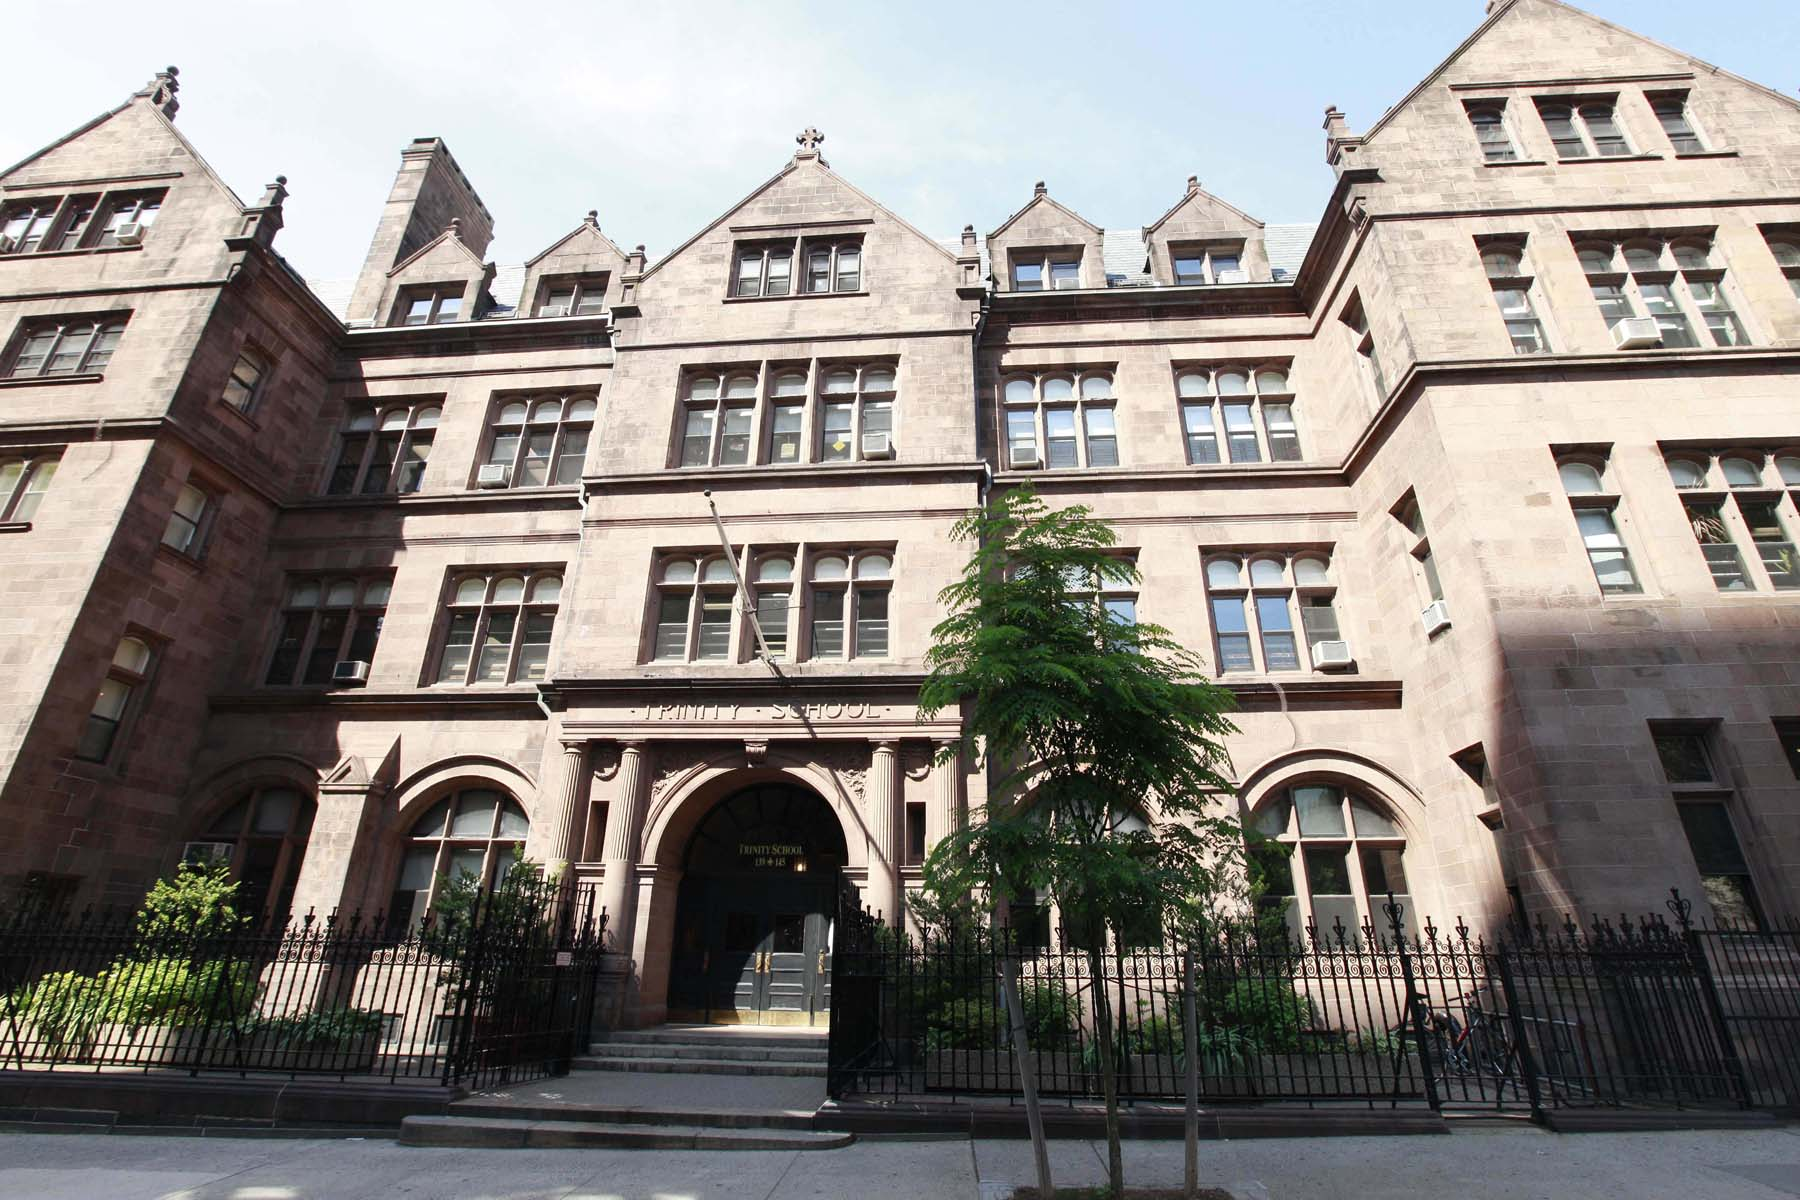 Trinity School 139 - 145 W. 91st Street, Manhattan, NY on Friday, May 21, 2010. PICTURED: